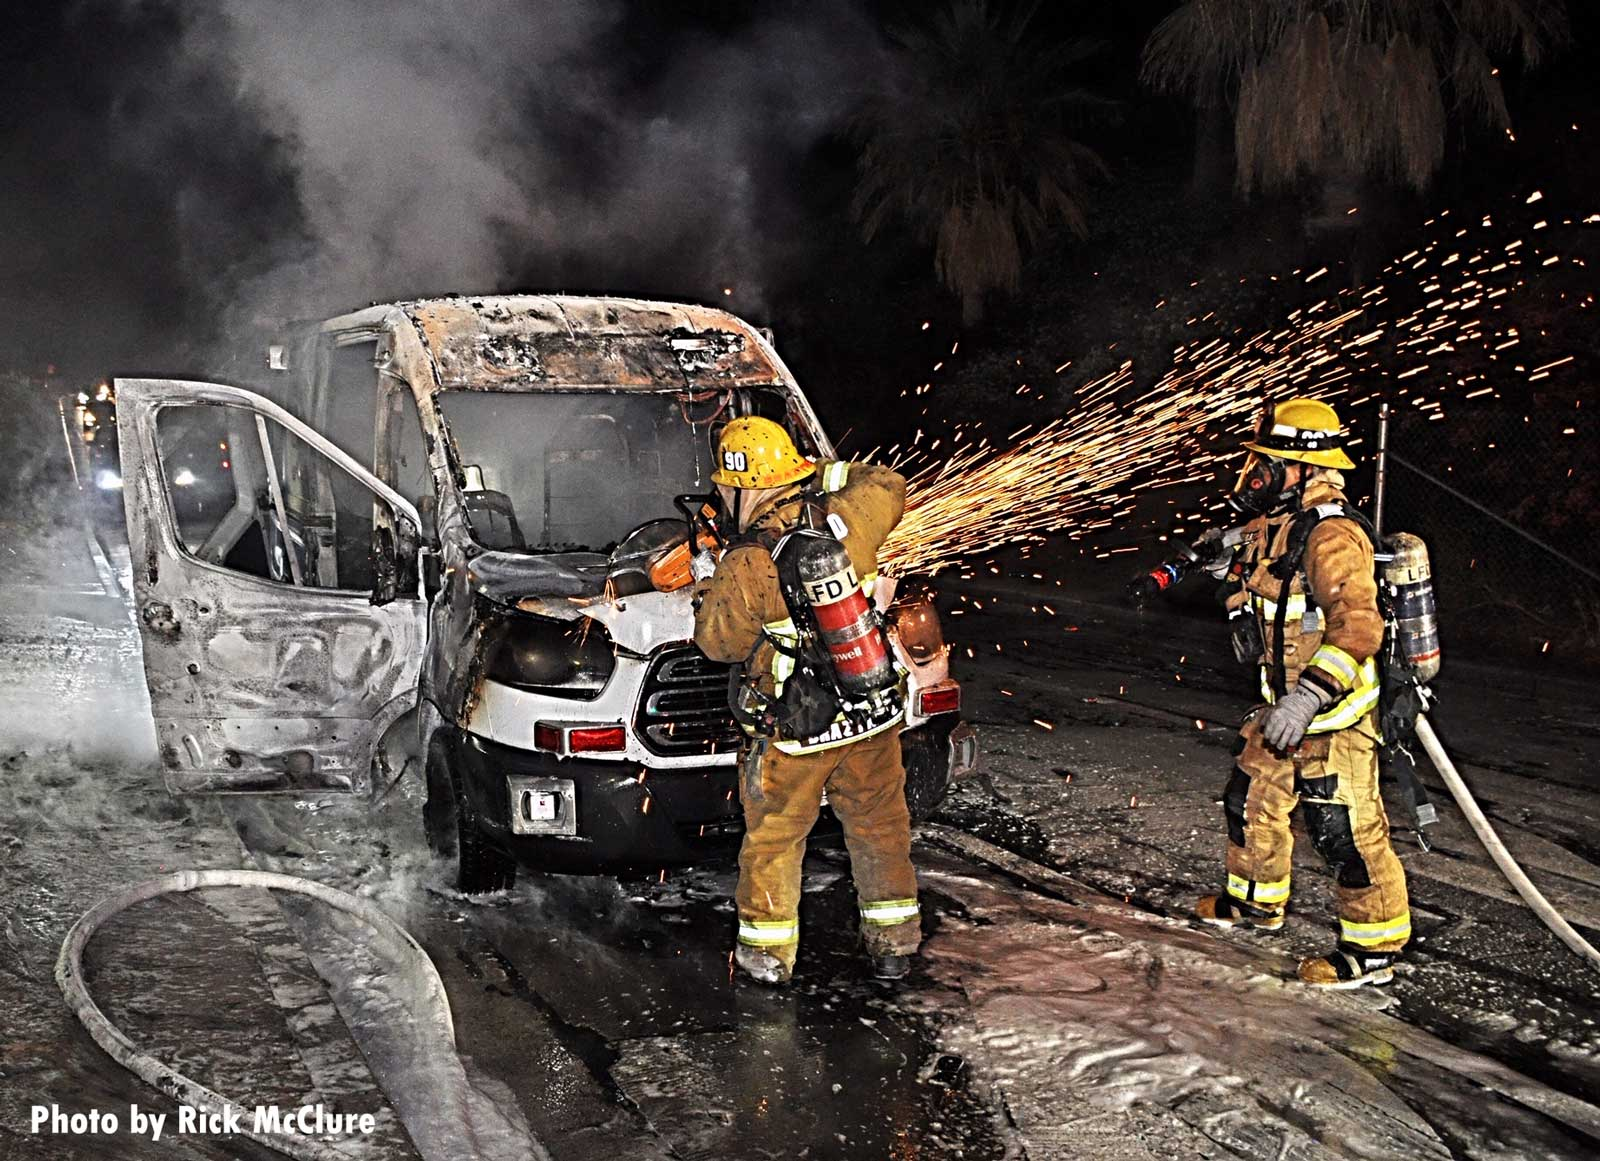 Firefighters cut into the vehicle to extinguish the fire